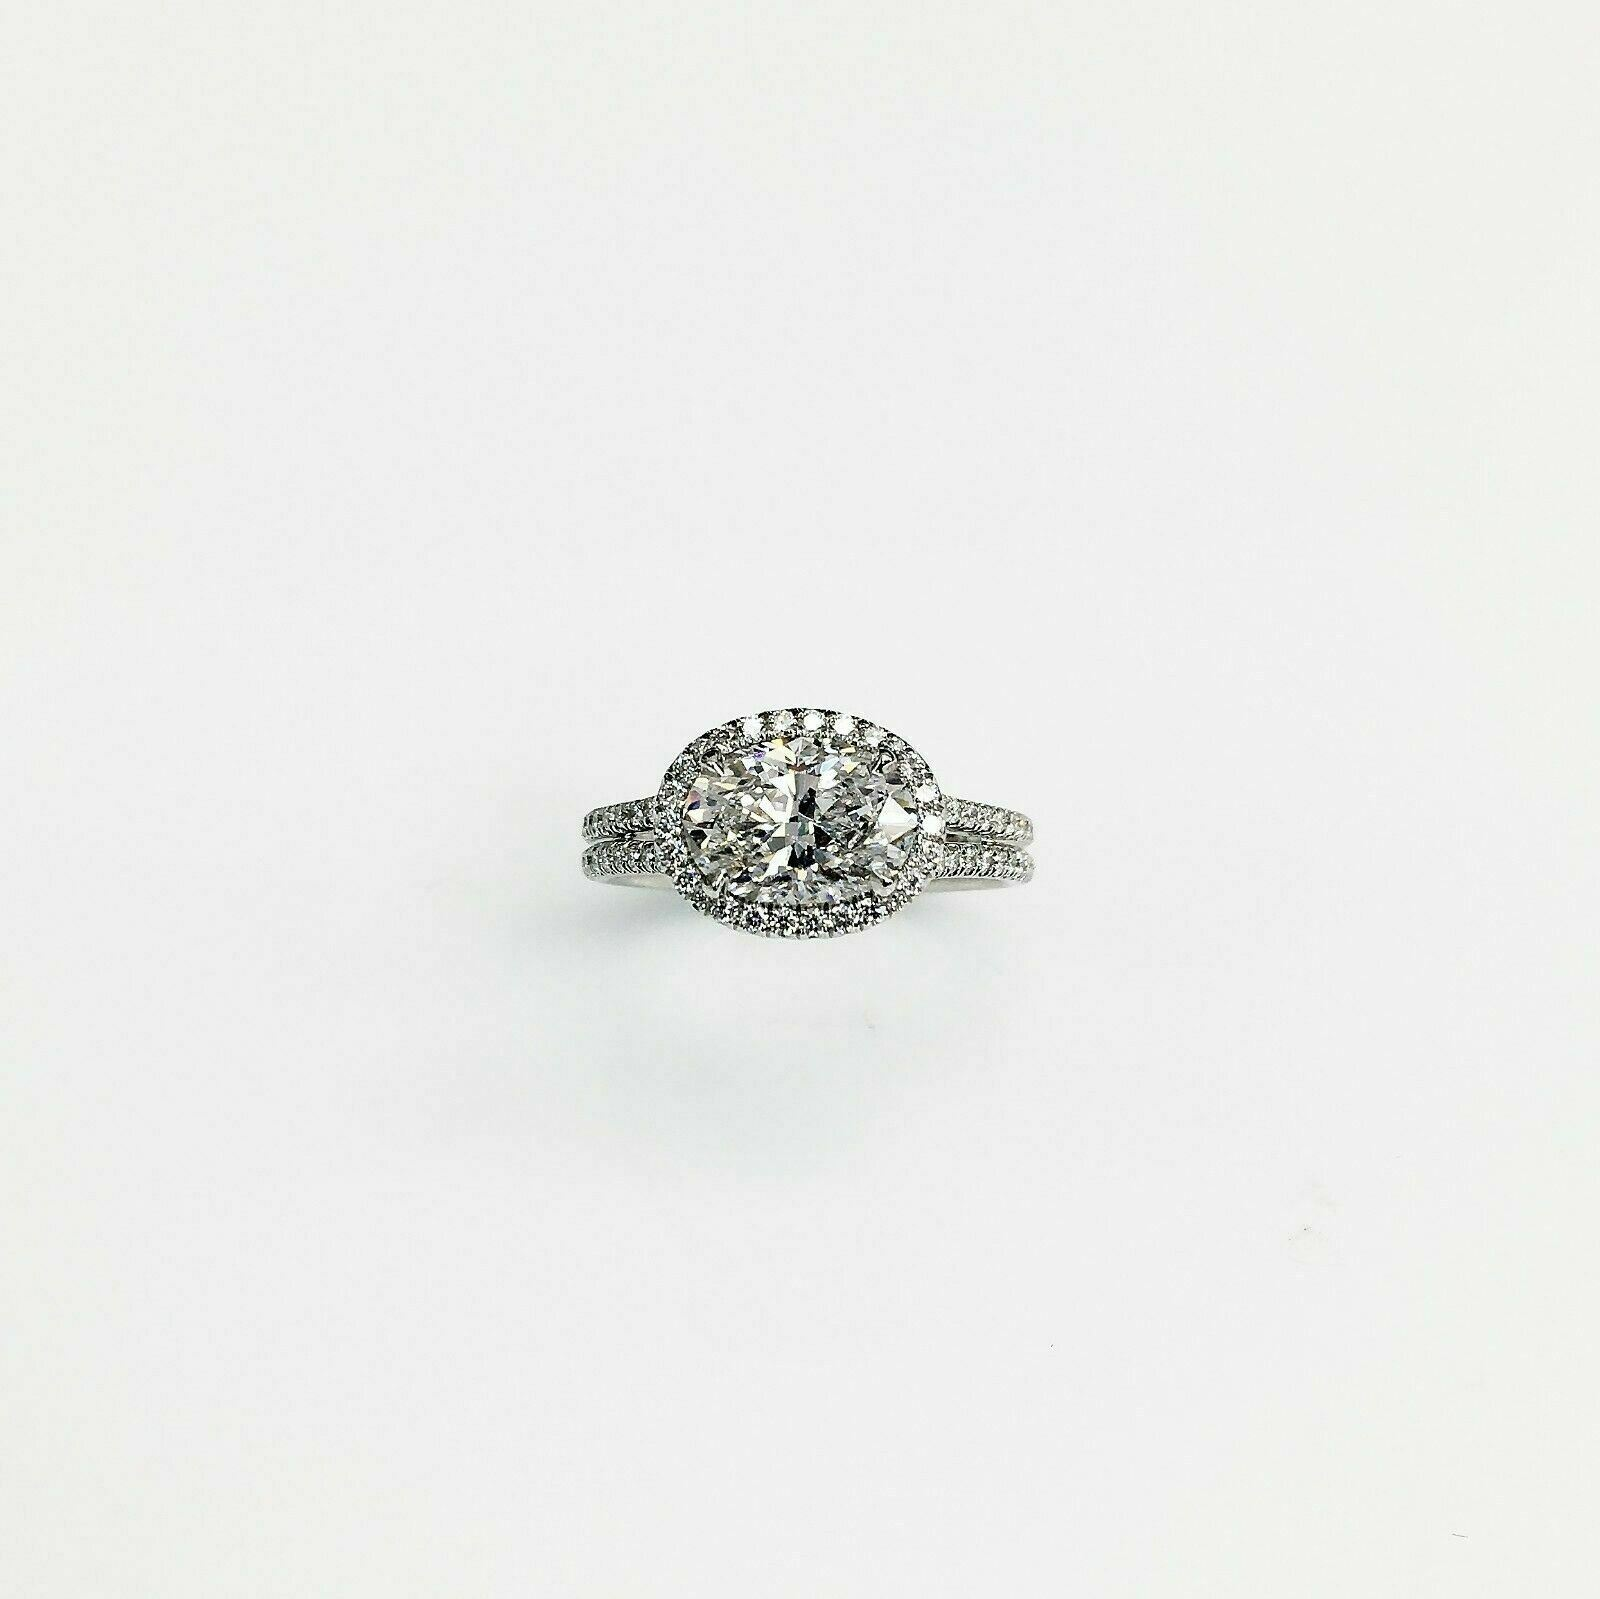 2.15 Ct tw Oval Platinum East West Halo Diamond Engagement Ring 1.53 GIA D IF